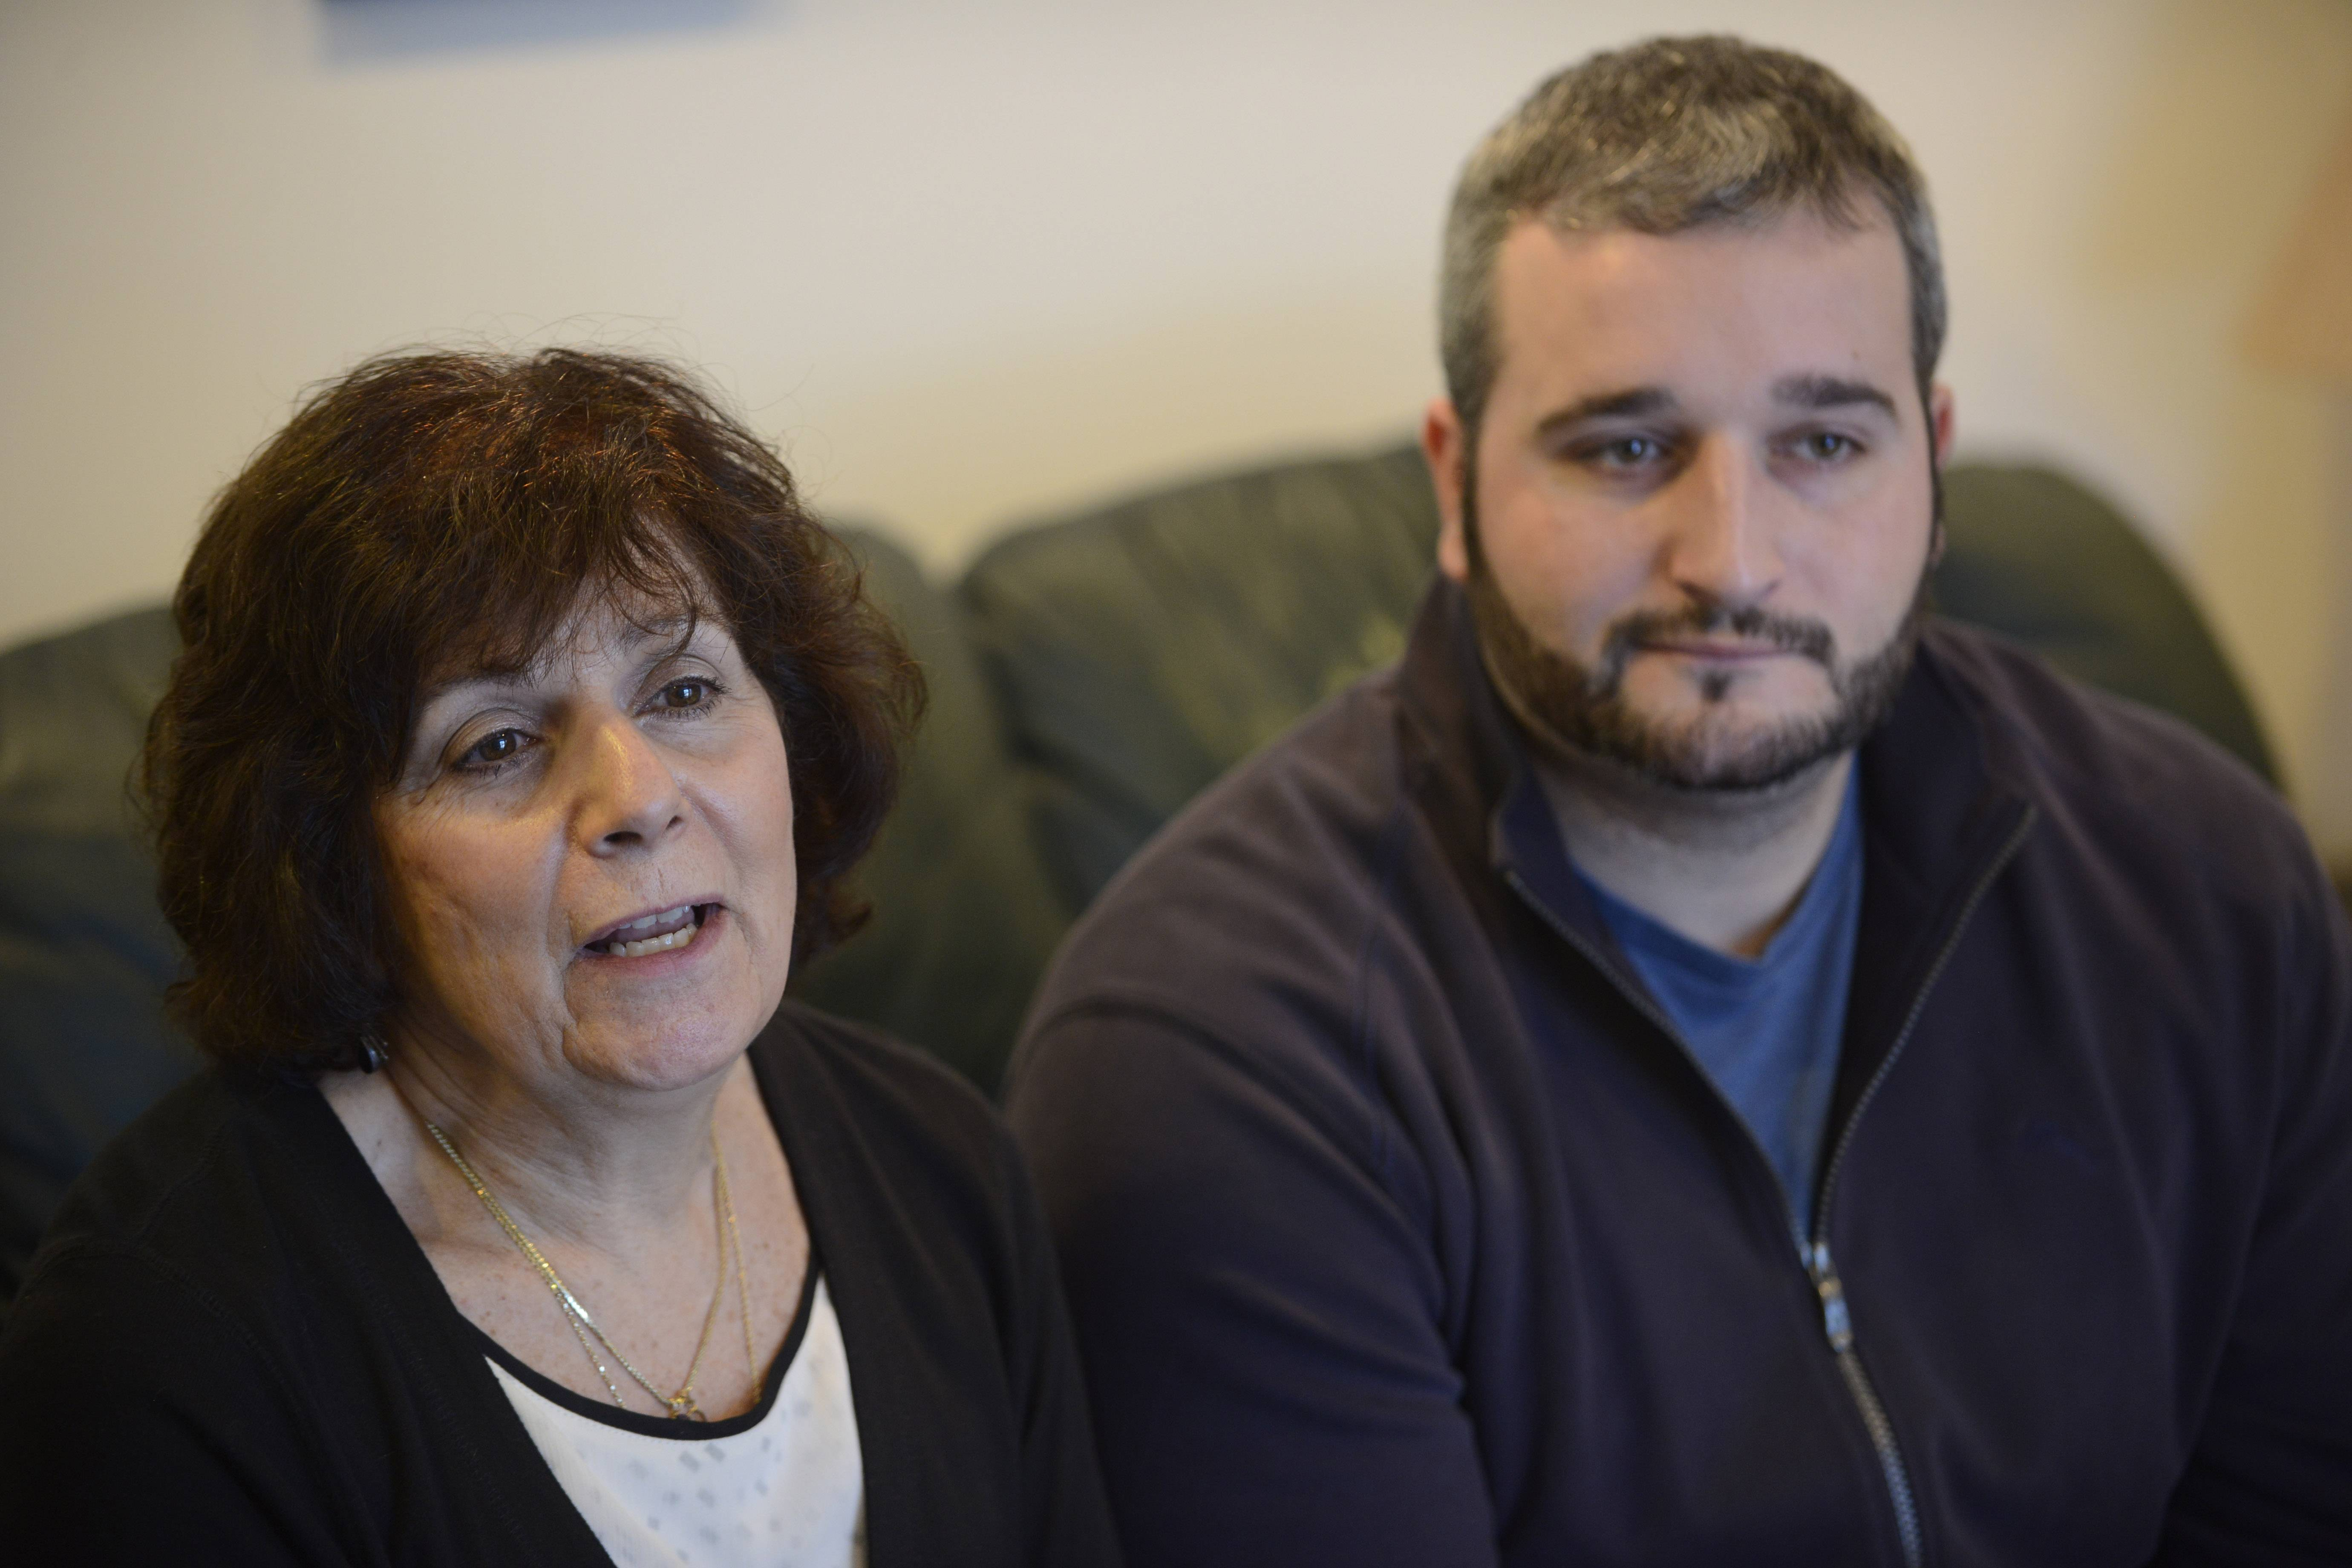 JOE LEWNARD/jlewnard@dailyherald.comPatty Bruce talks about her late husband, John, as her son, JP, listens. The family of the late John Bruce of Arlington Heights won a $6.65 million judgment in its wrongful death suit against CAV International.